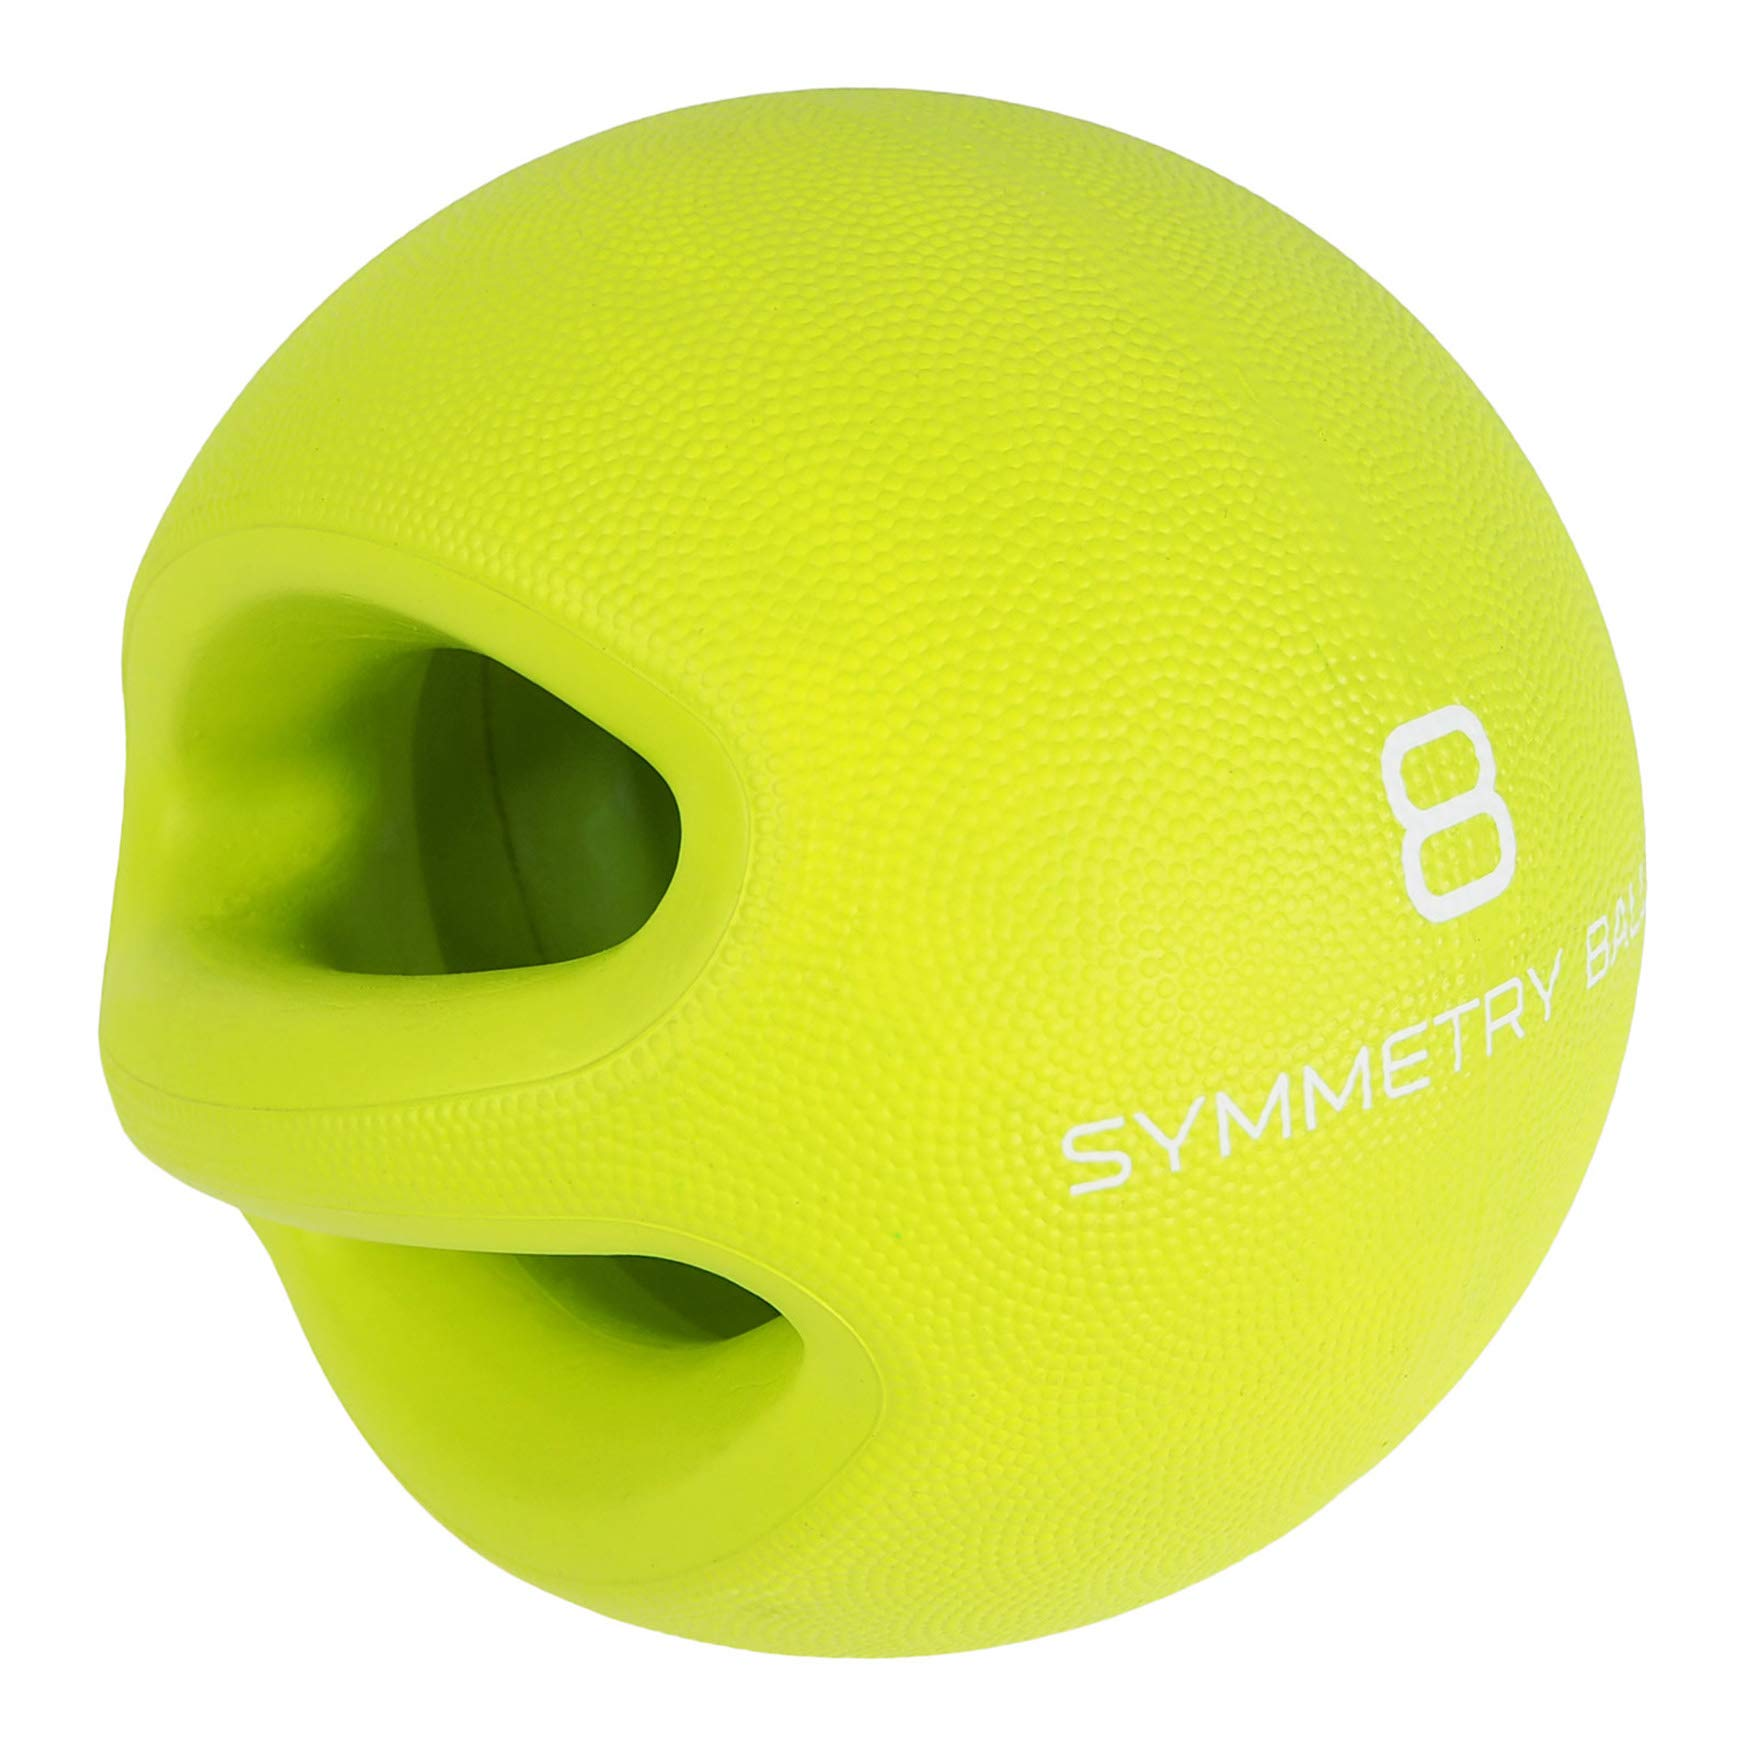 Smart Body Symmetry Ball - Patented Dual Handled Medicine Ball for Core Strength (8-Pound Green)